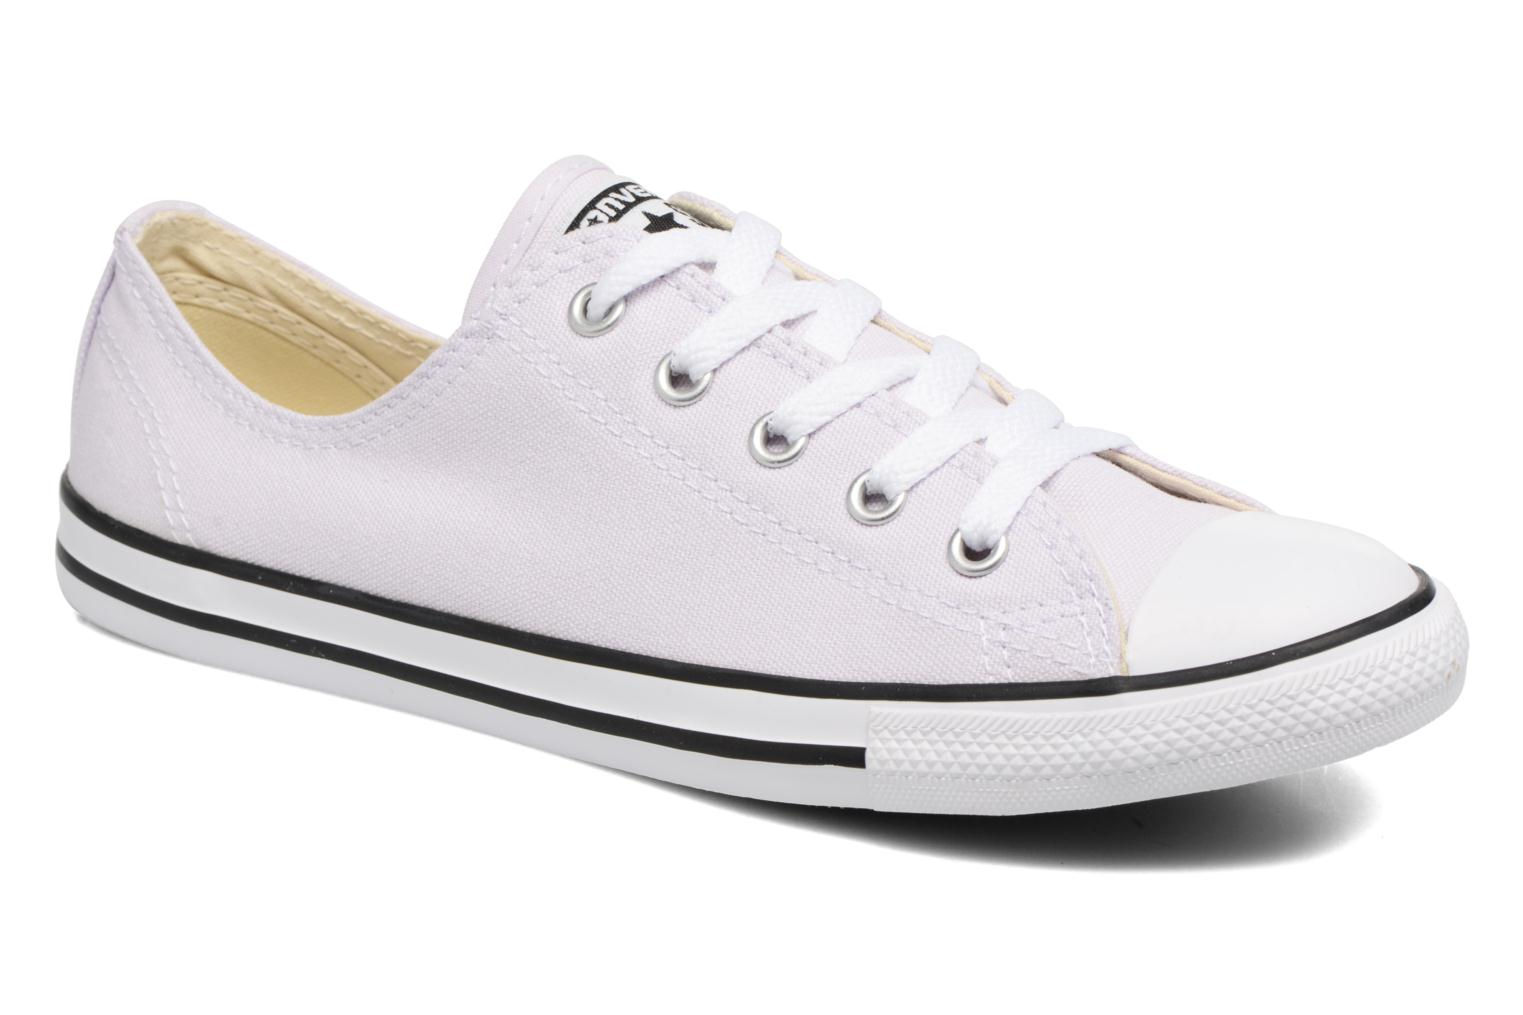 All Star Dainty Canvas Ox W Barely Grape/White/Black